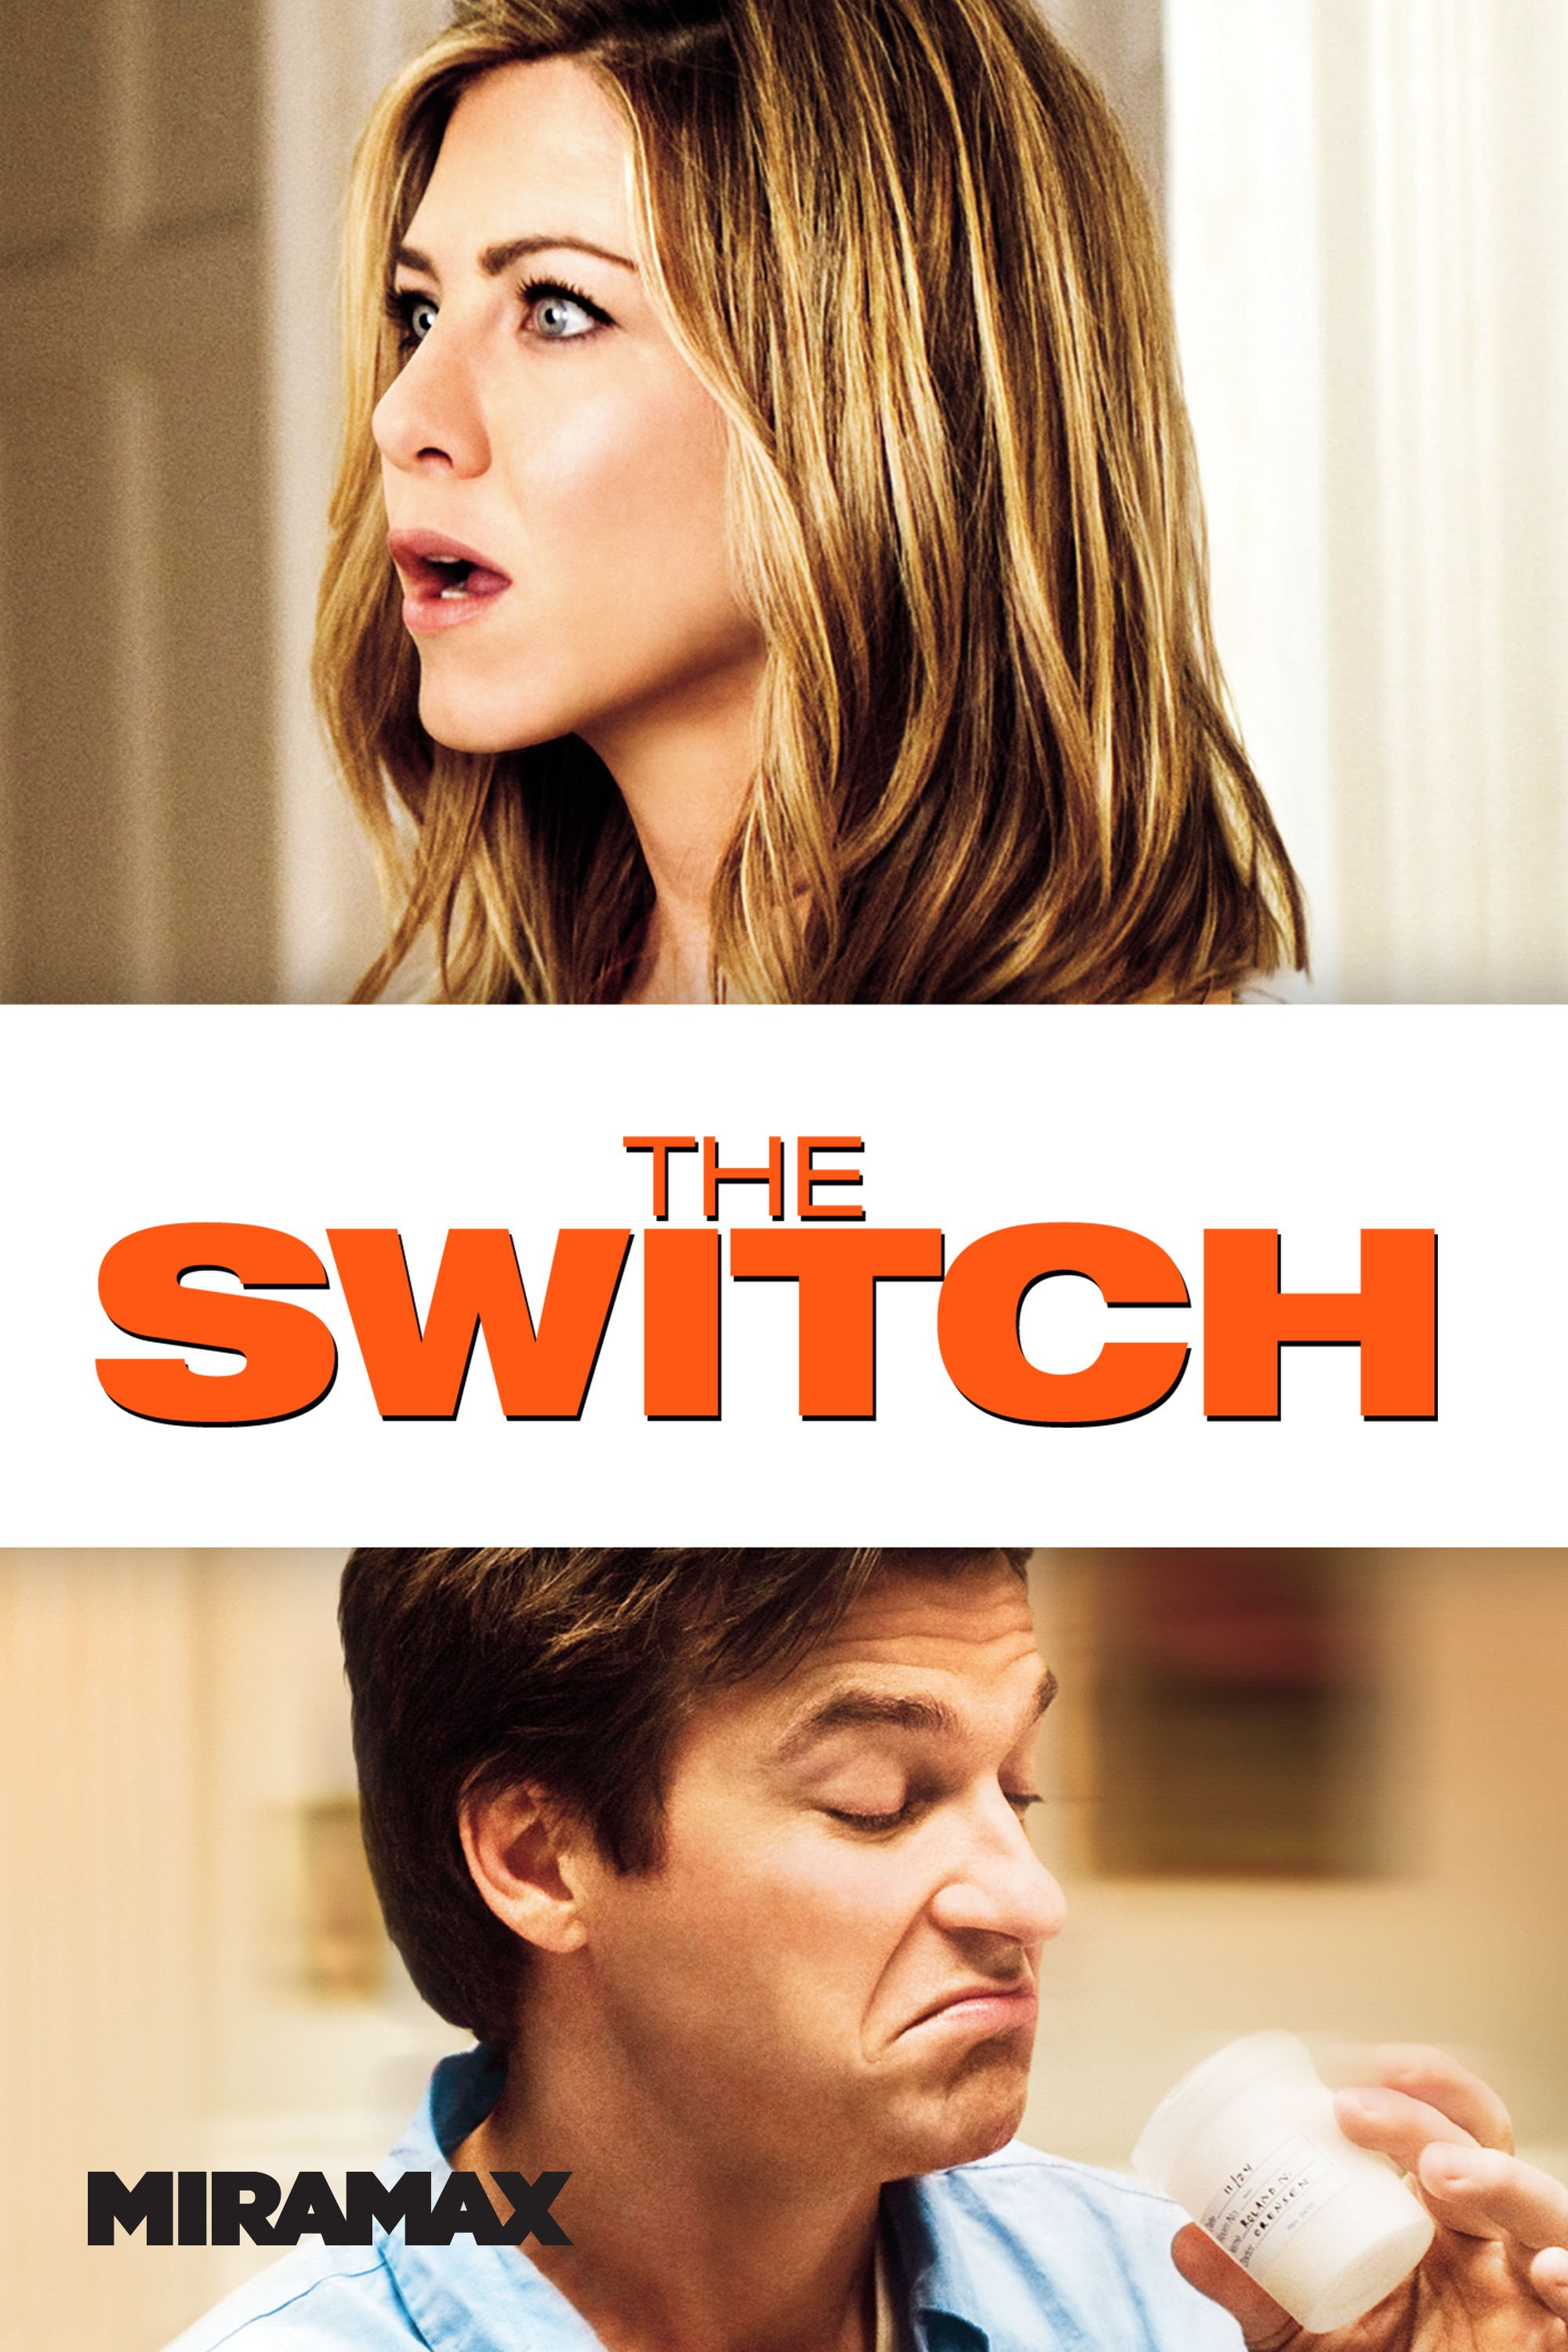 the-switch-filming-locations-dvd-itunes-poster